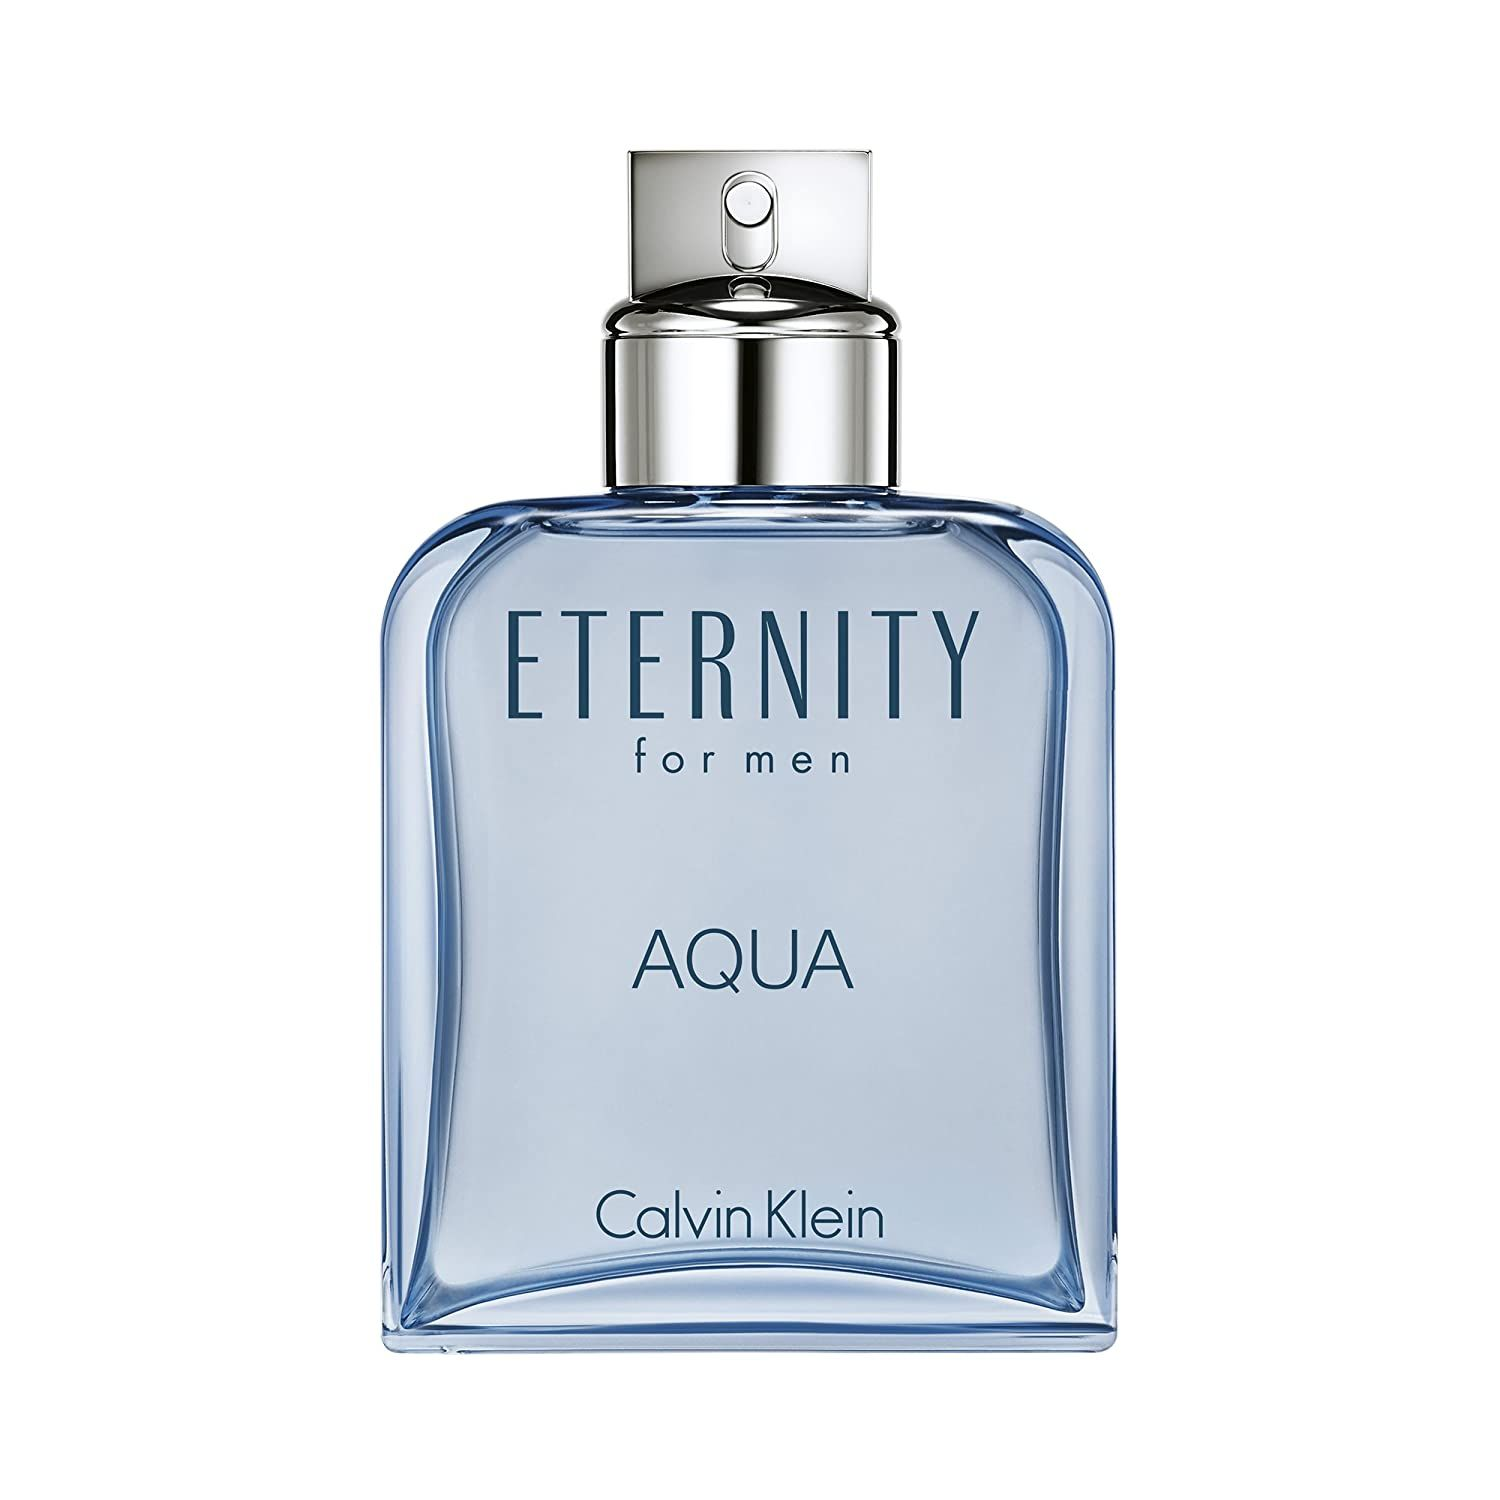 Calvin Klein Eternity For Men Aqua Eau De Toilette Eau De Toilette Luxury Beauty Aqua